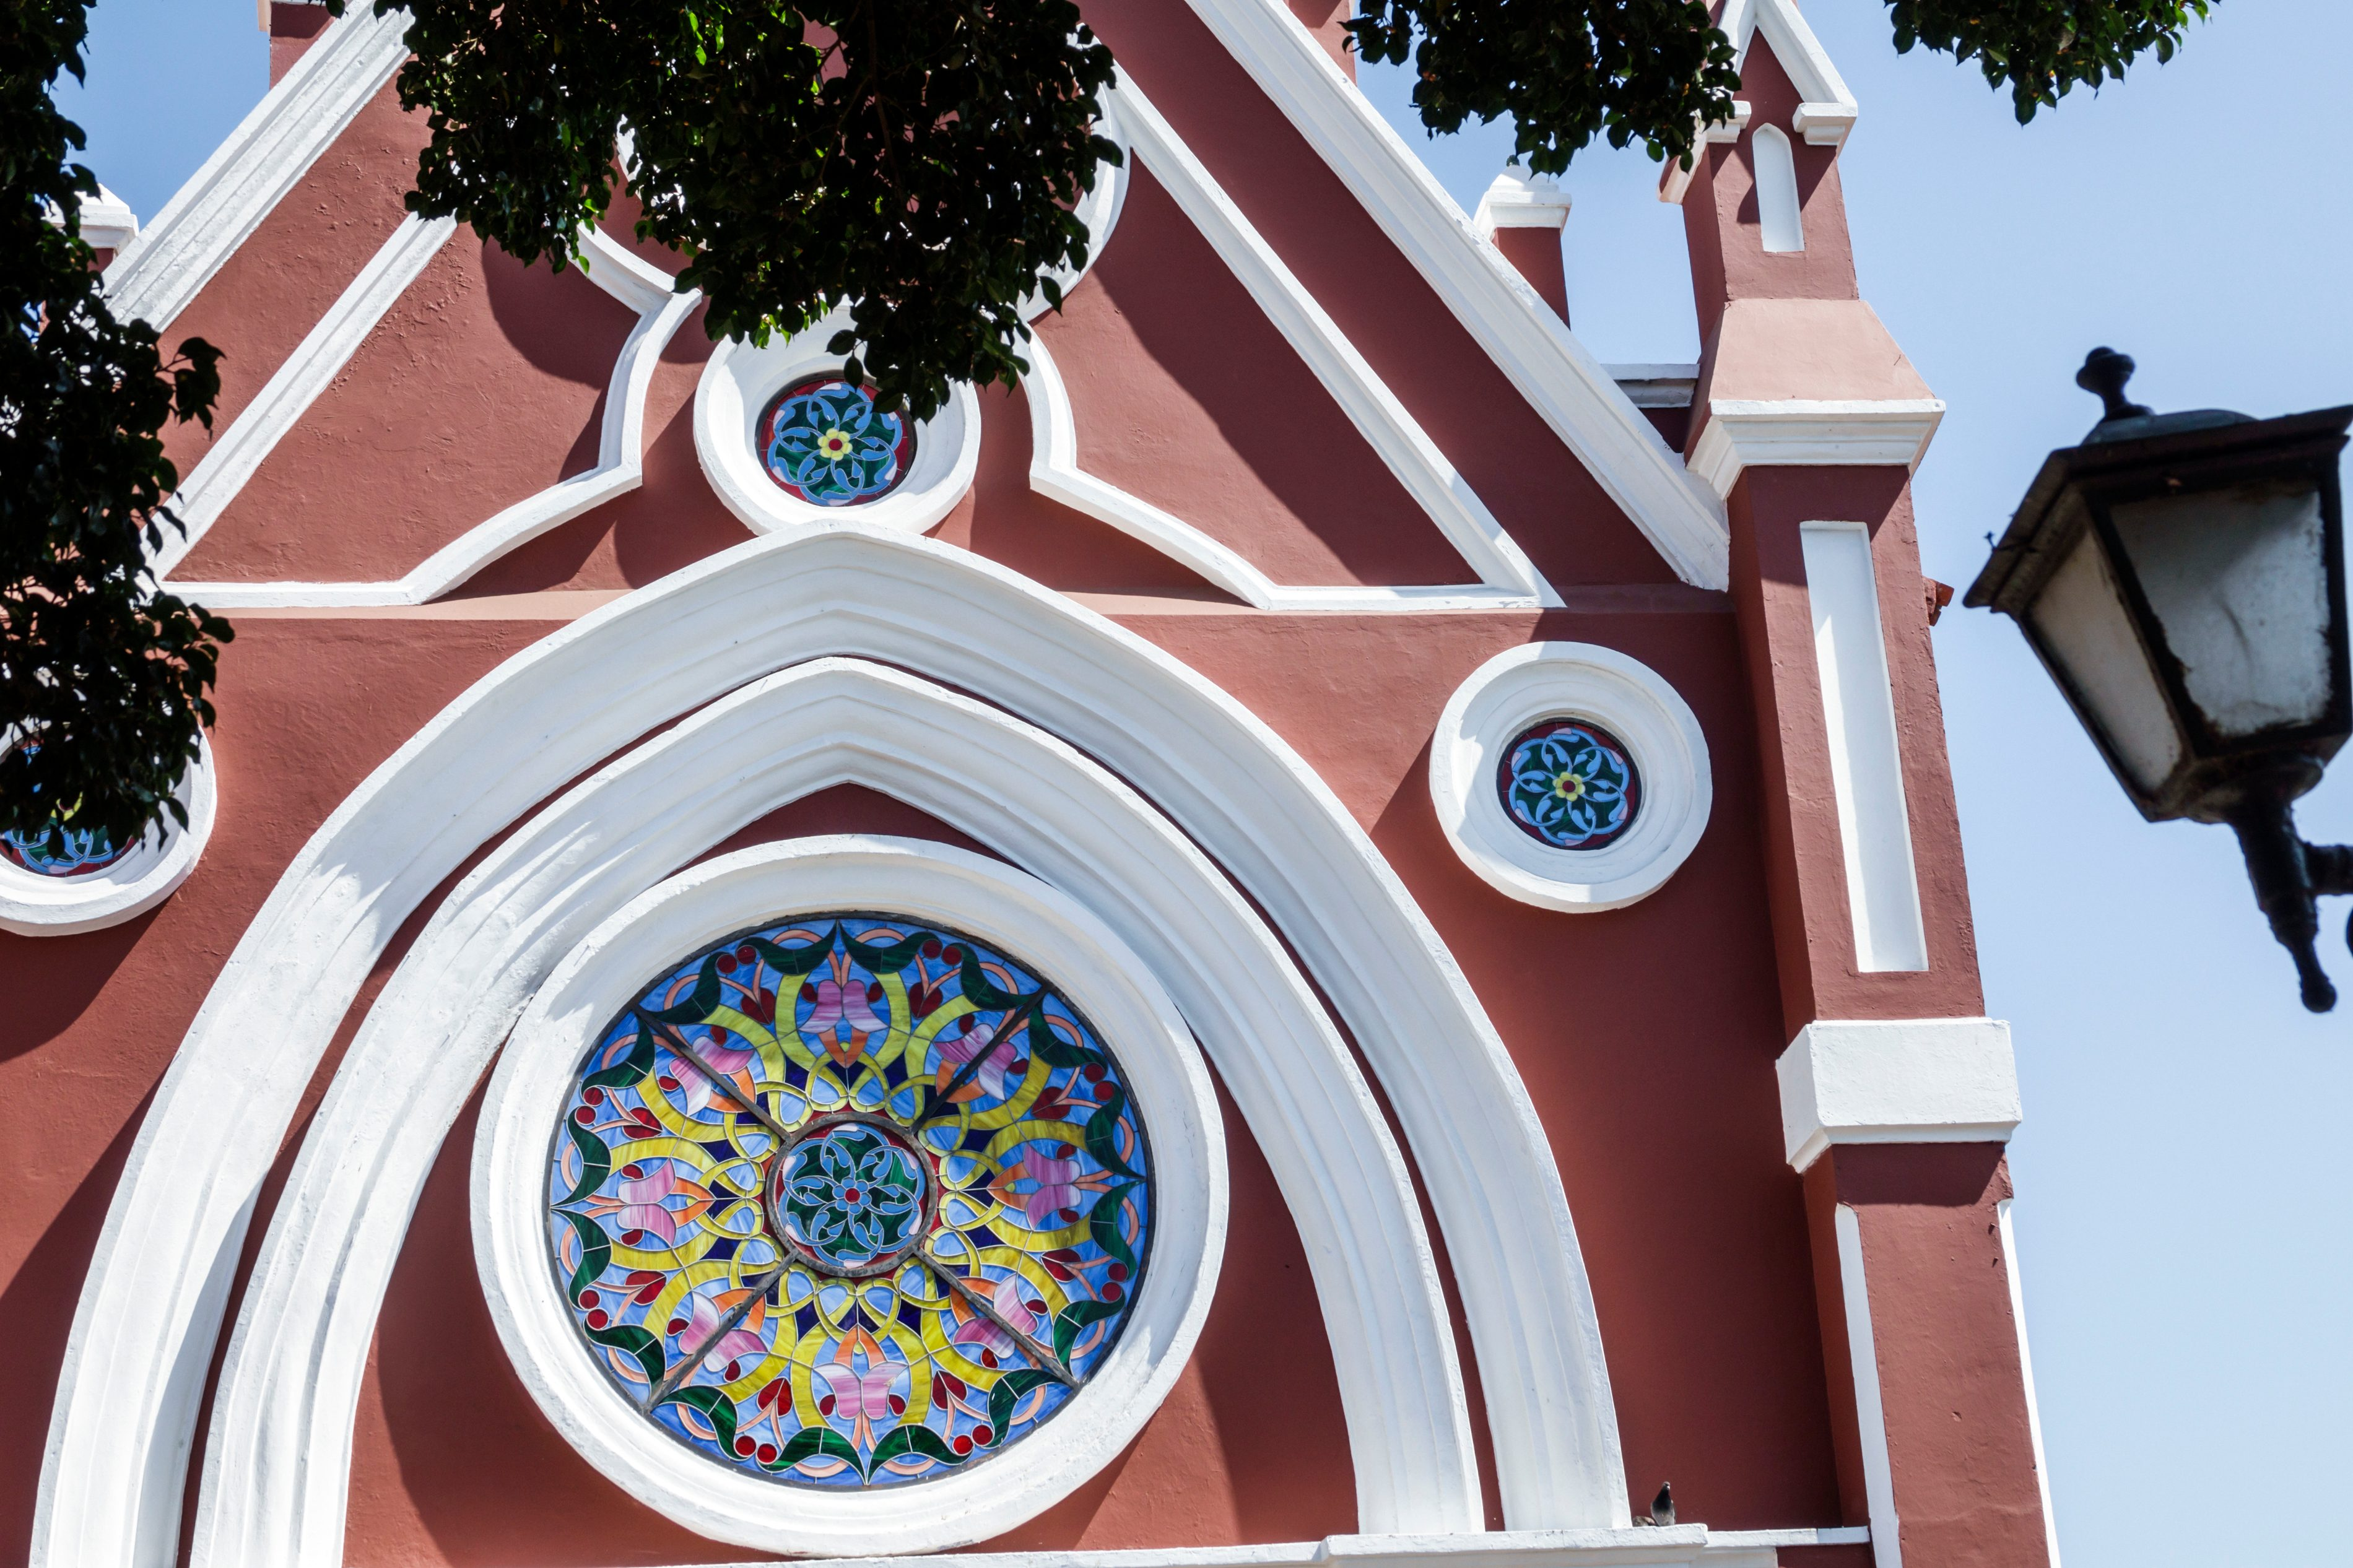 Cartagena, Fine Arts University, exterior and stained glass windows